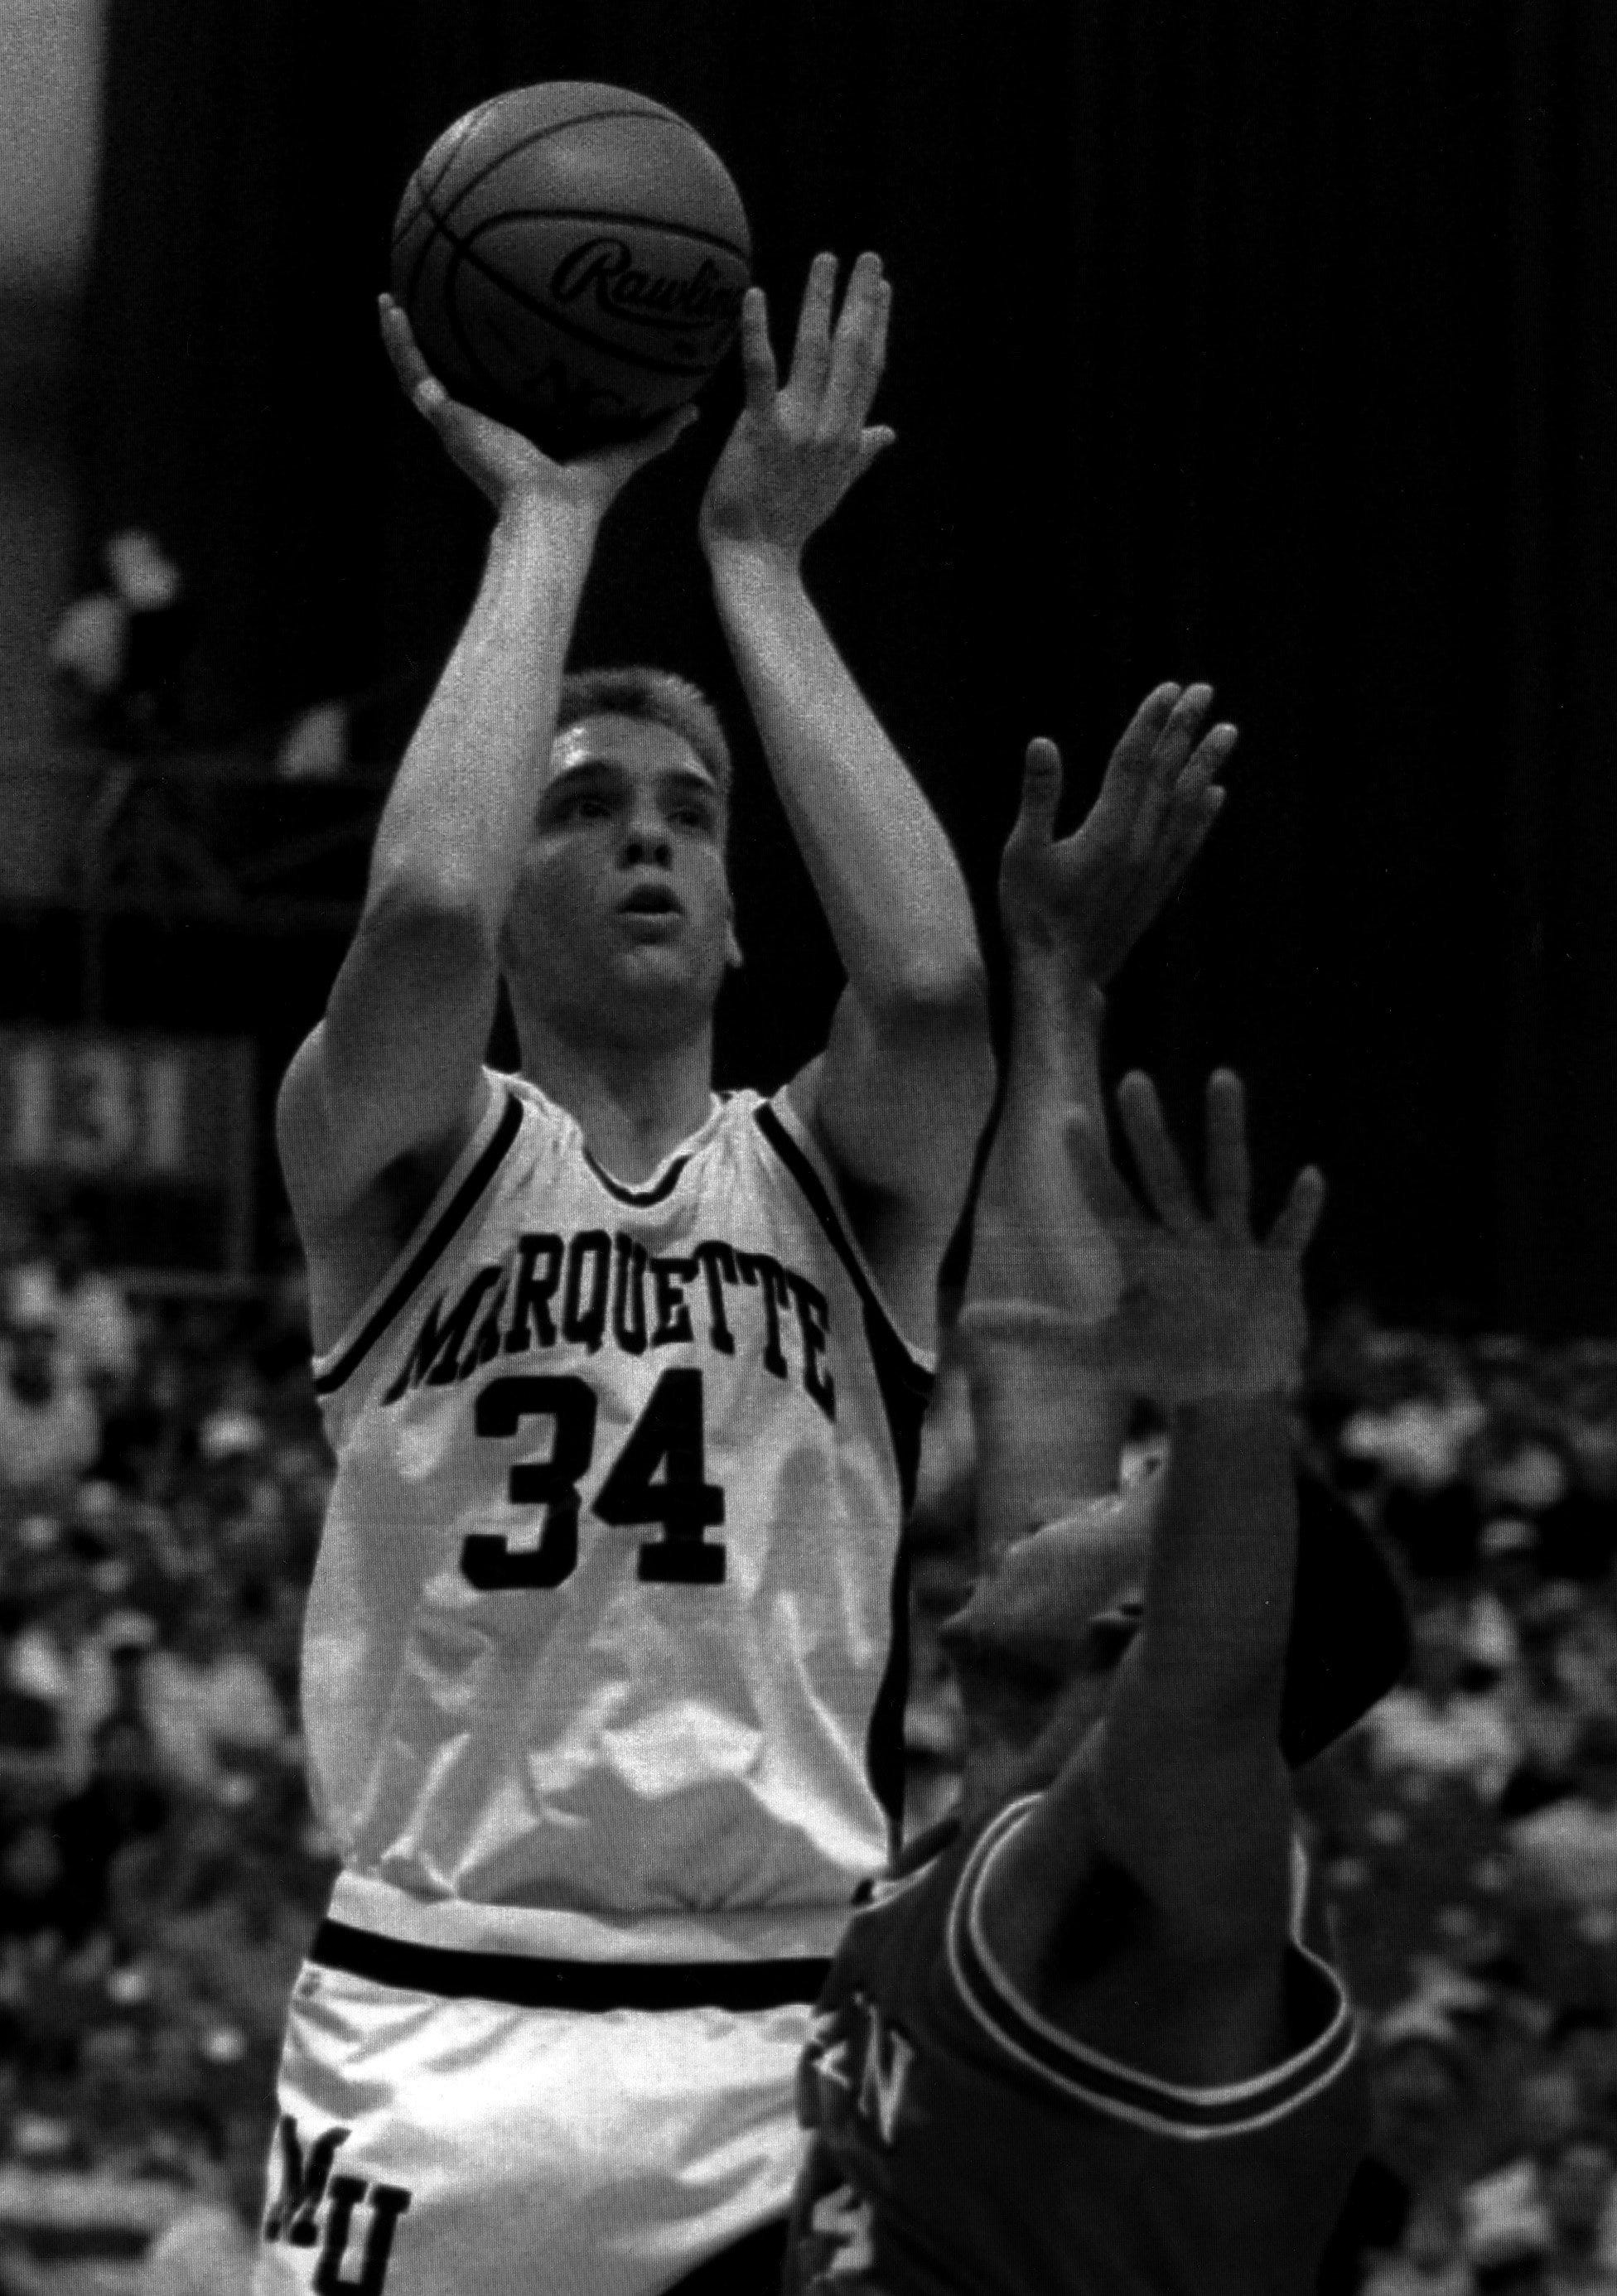 100 years of Marquette basketball: Full of golden moments